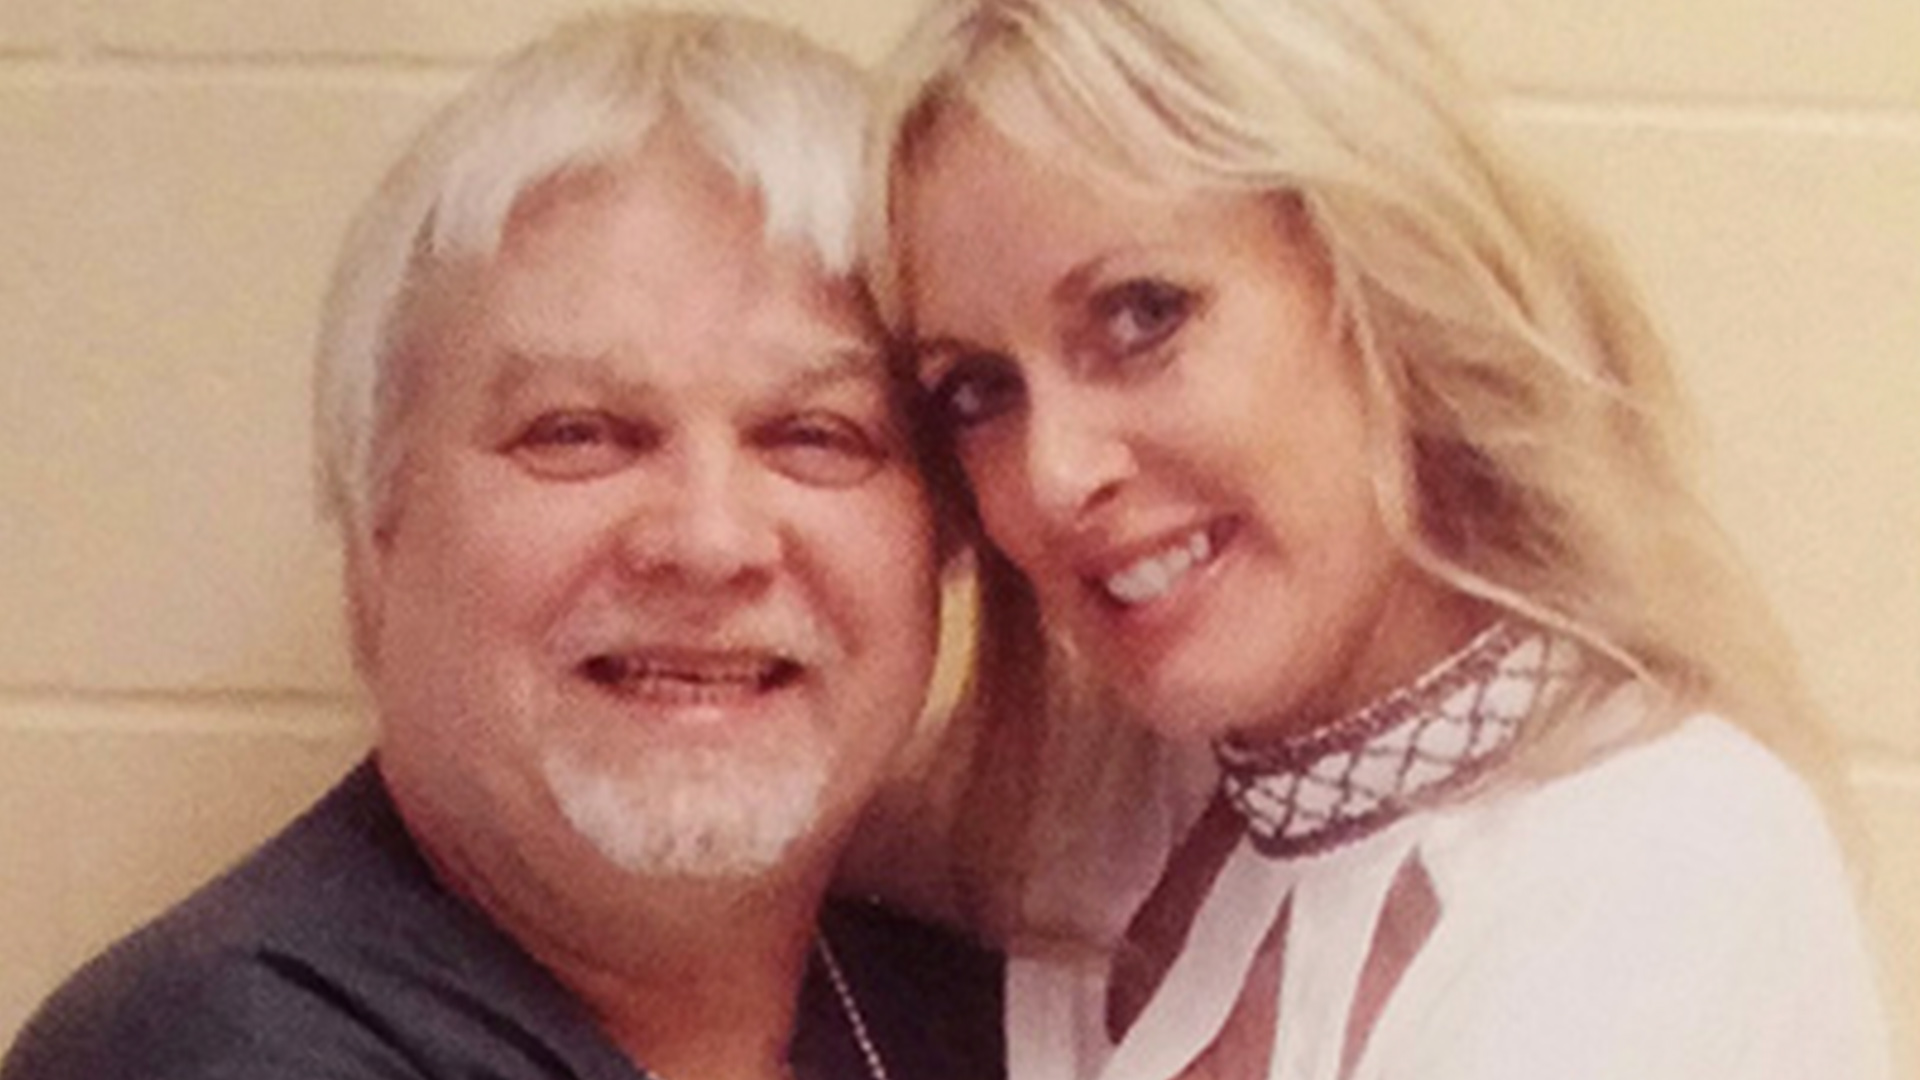 Steven Avery's Relationship with New Fiancée Is 'Over Already': Source